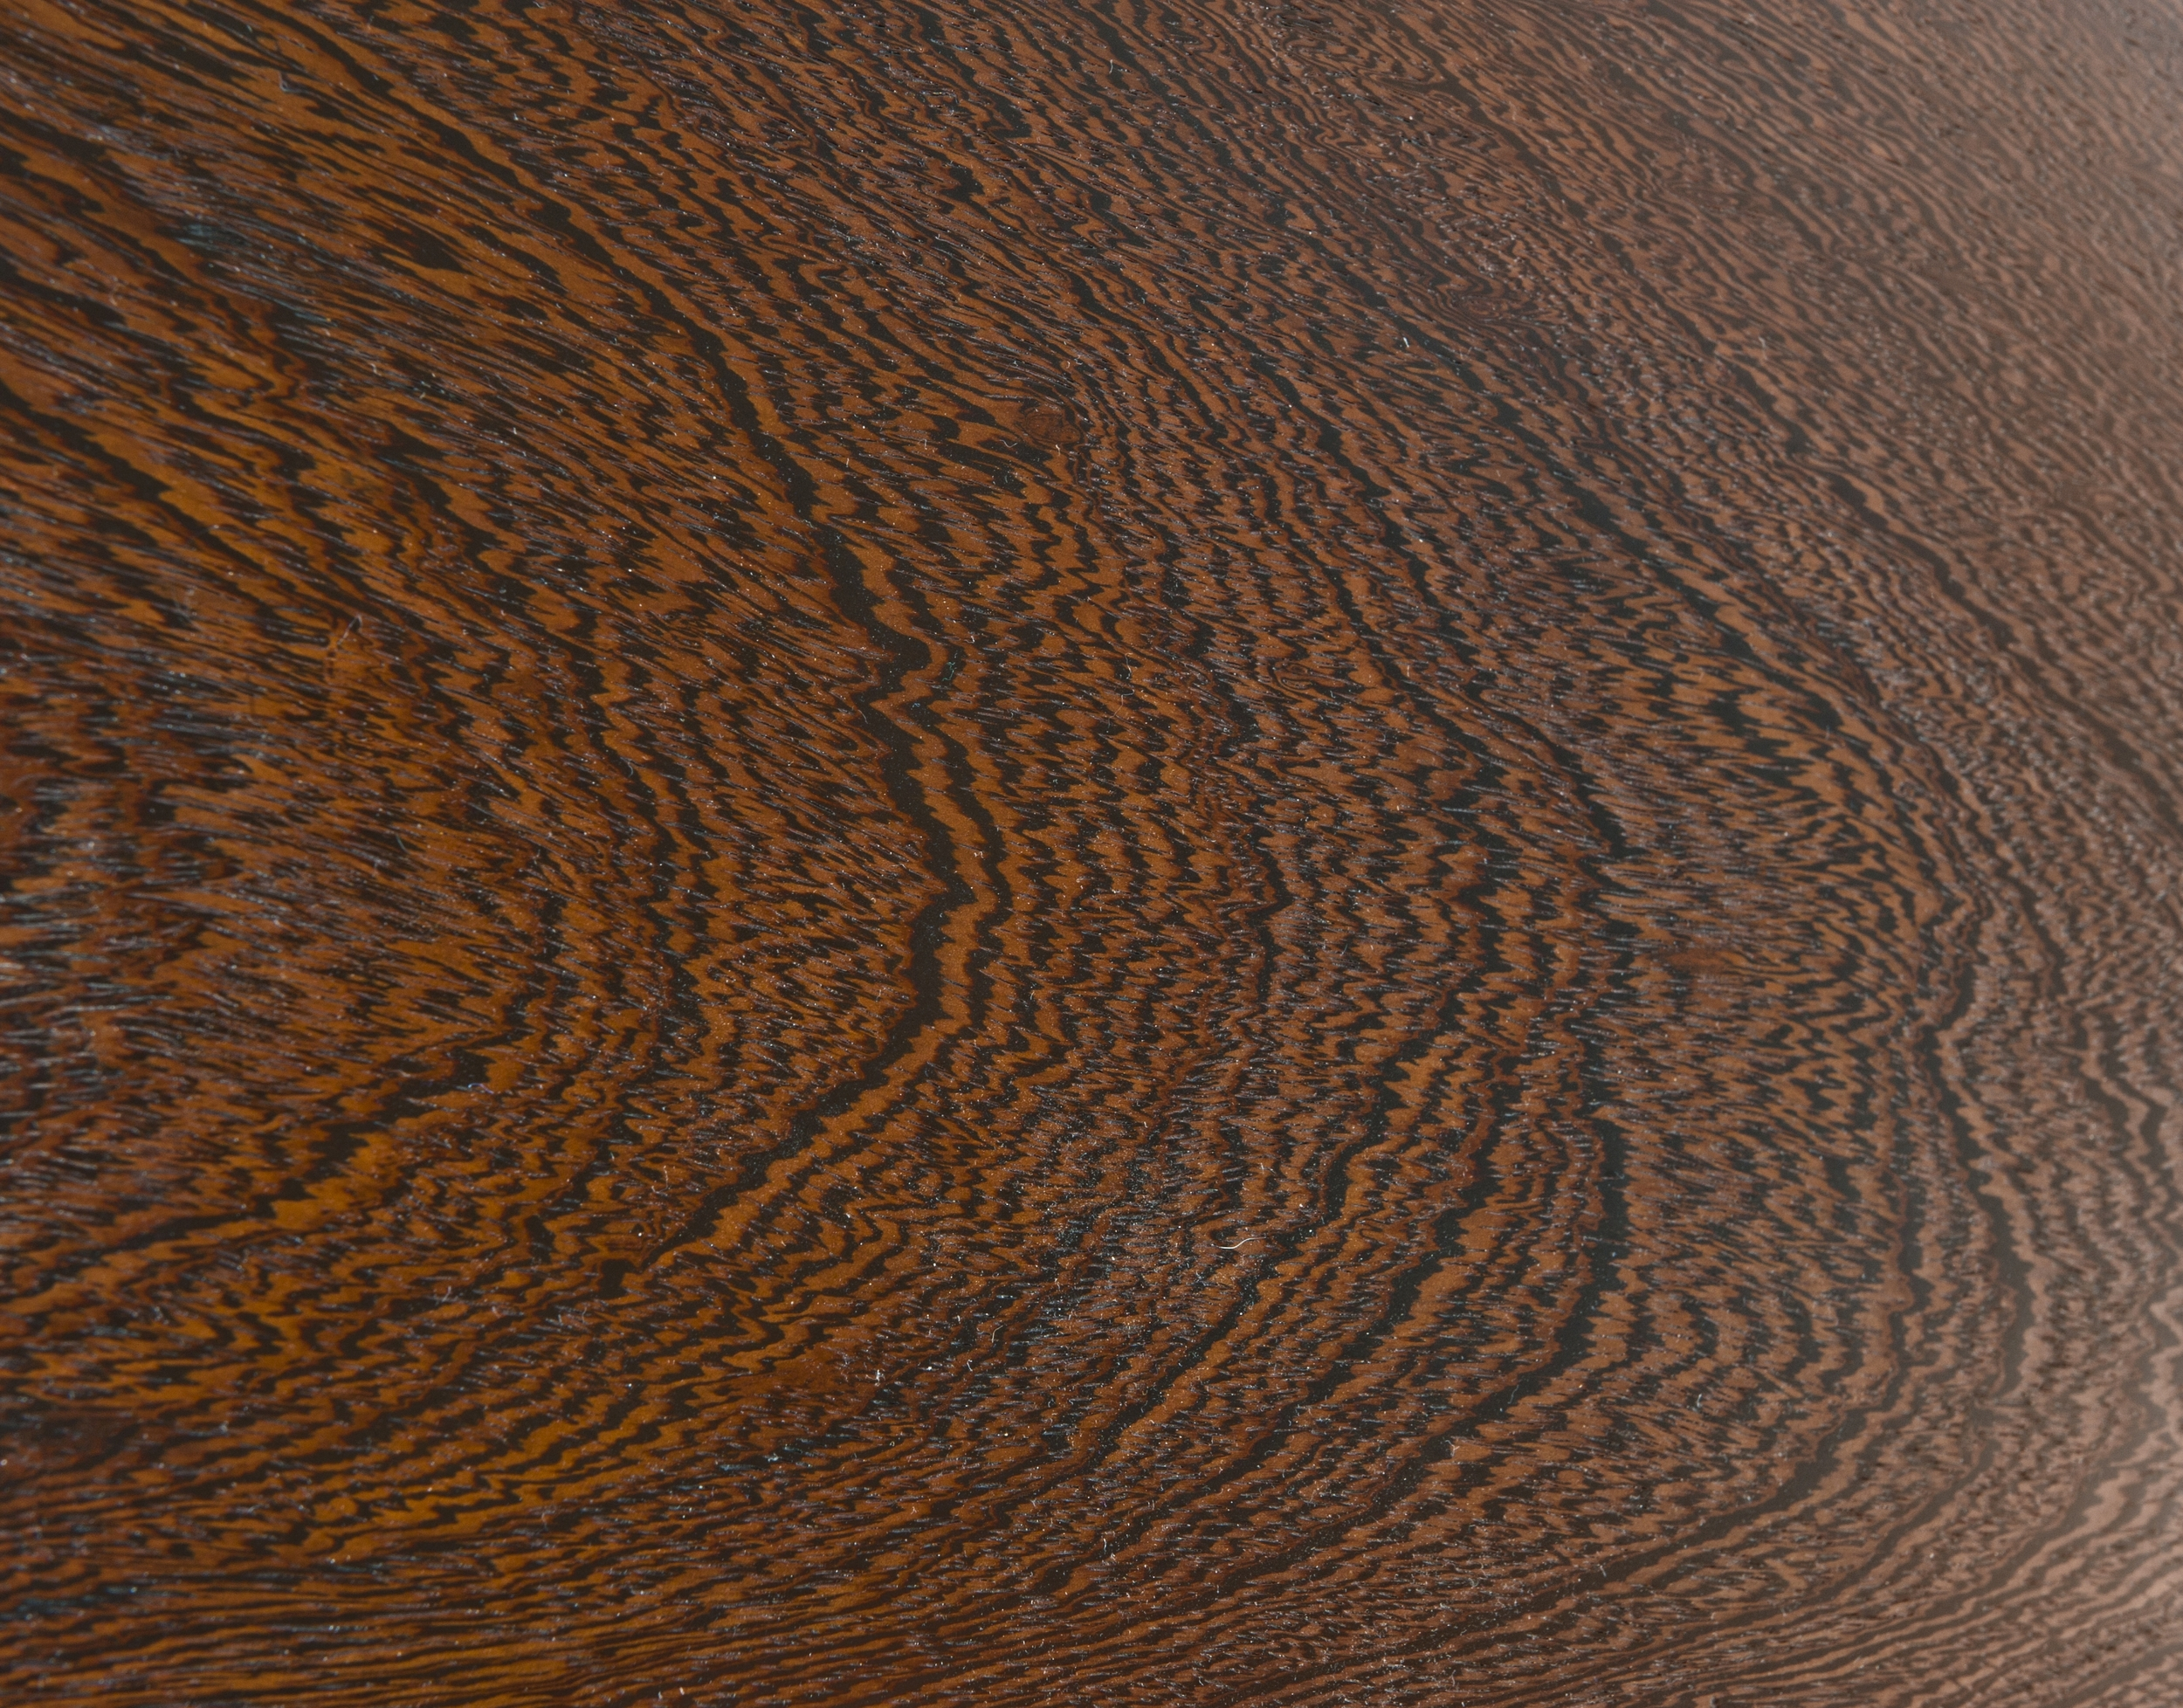 A single board of Wenge, an African hardwood, rarely found in the  dimensions of this design